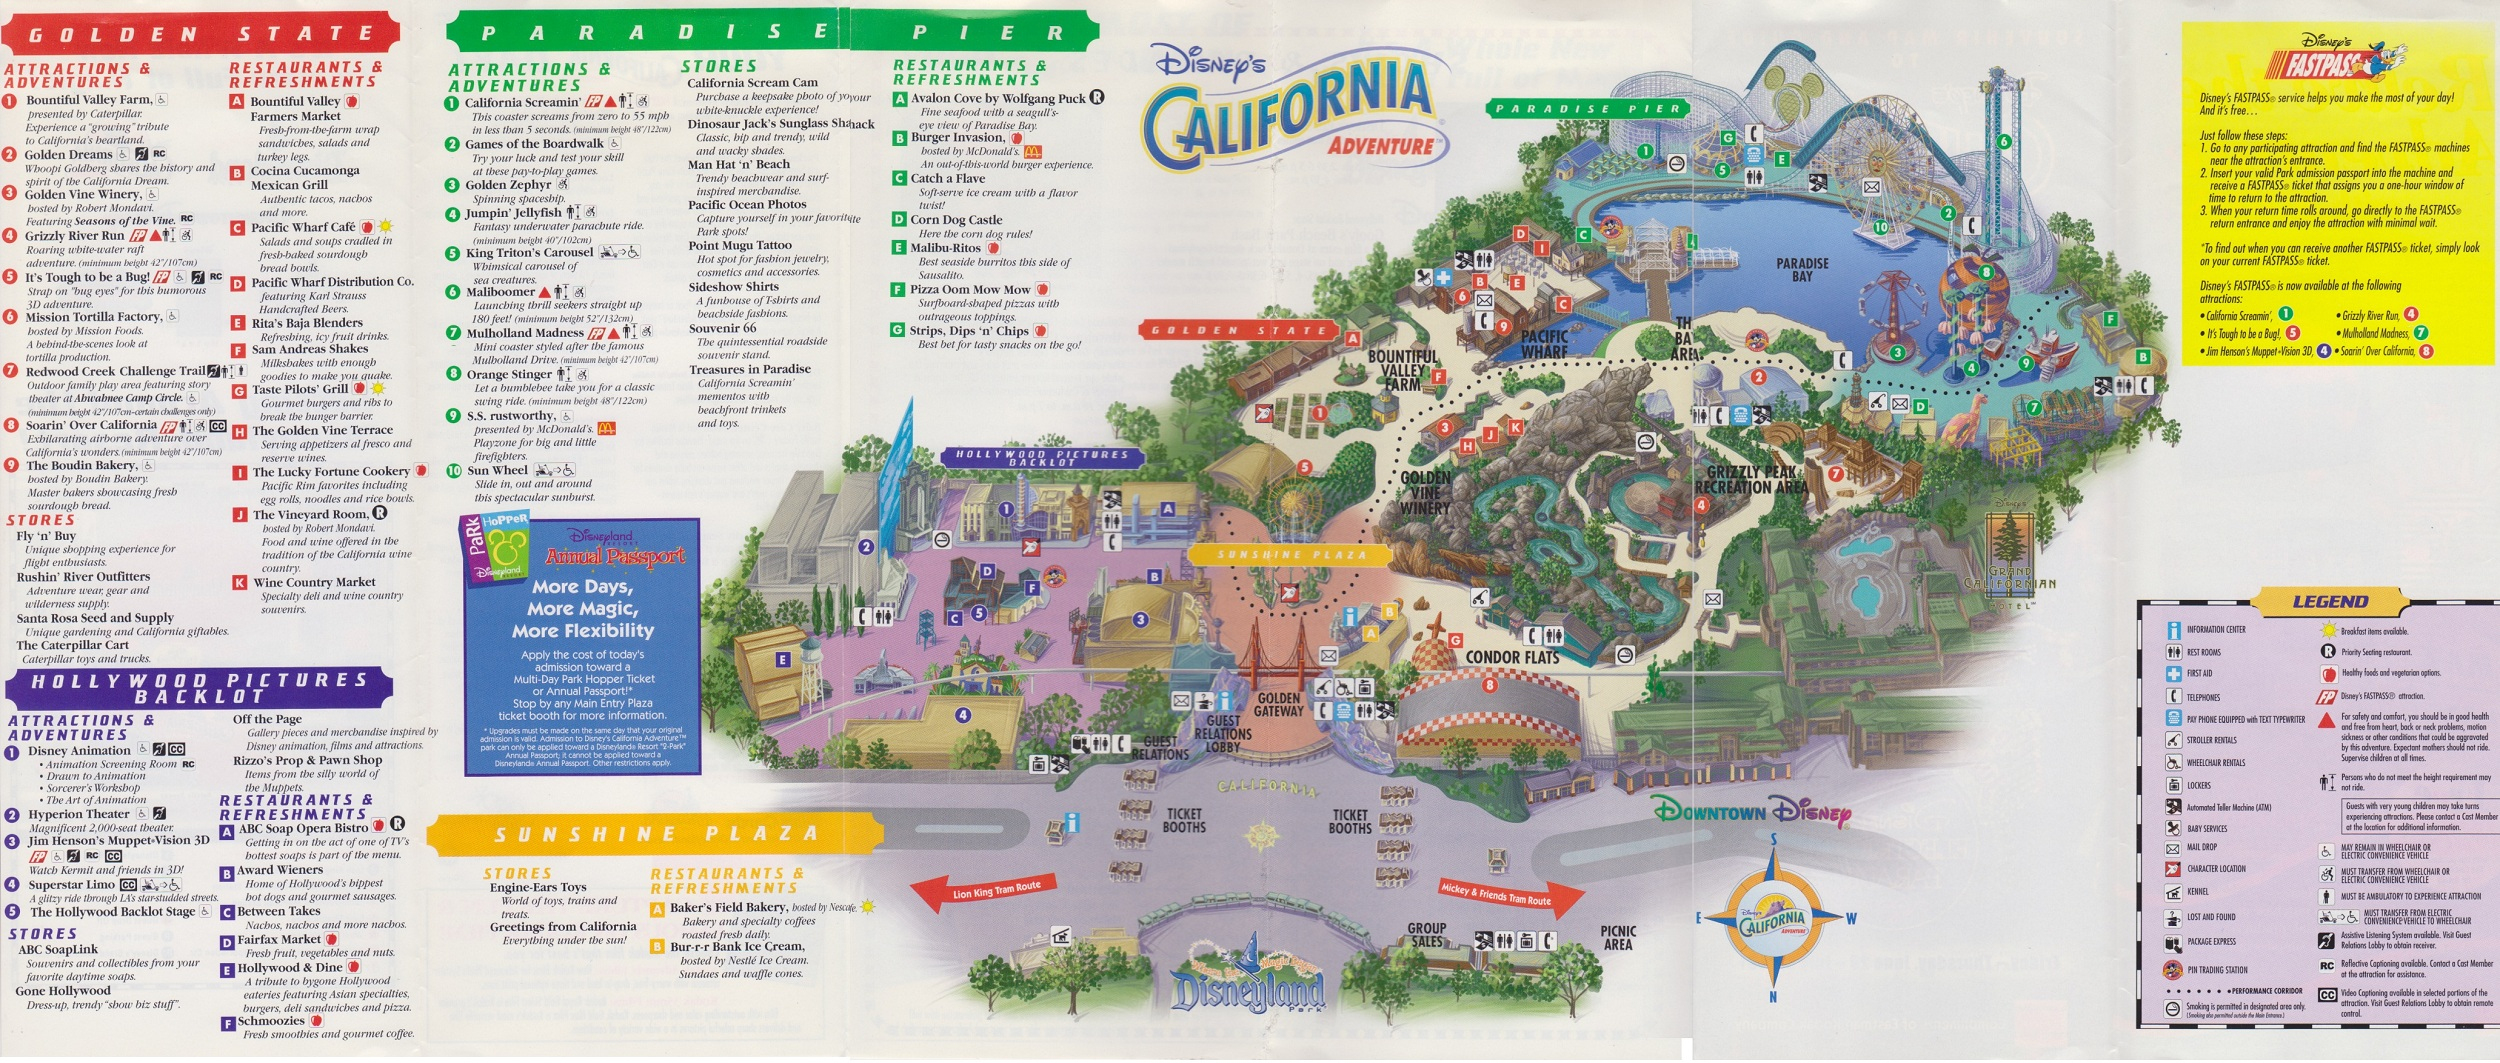 Map Map California Disney World California Map - Klipy - Disney World California Map